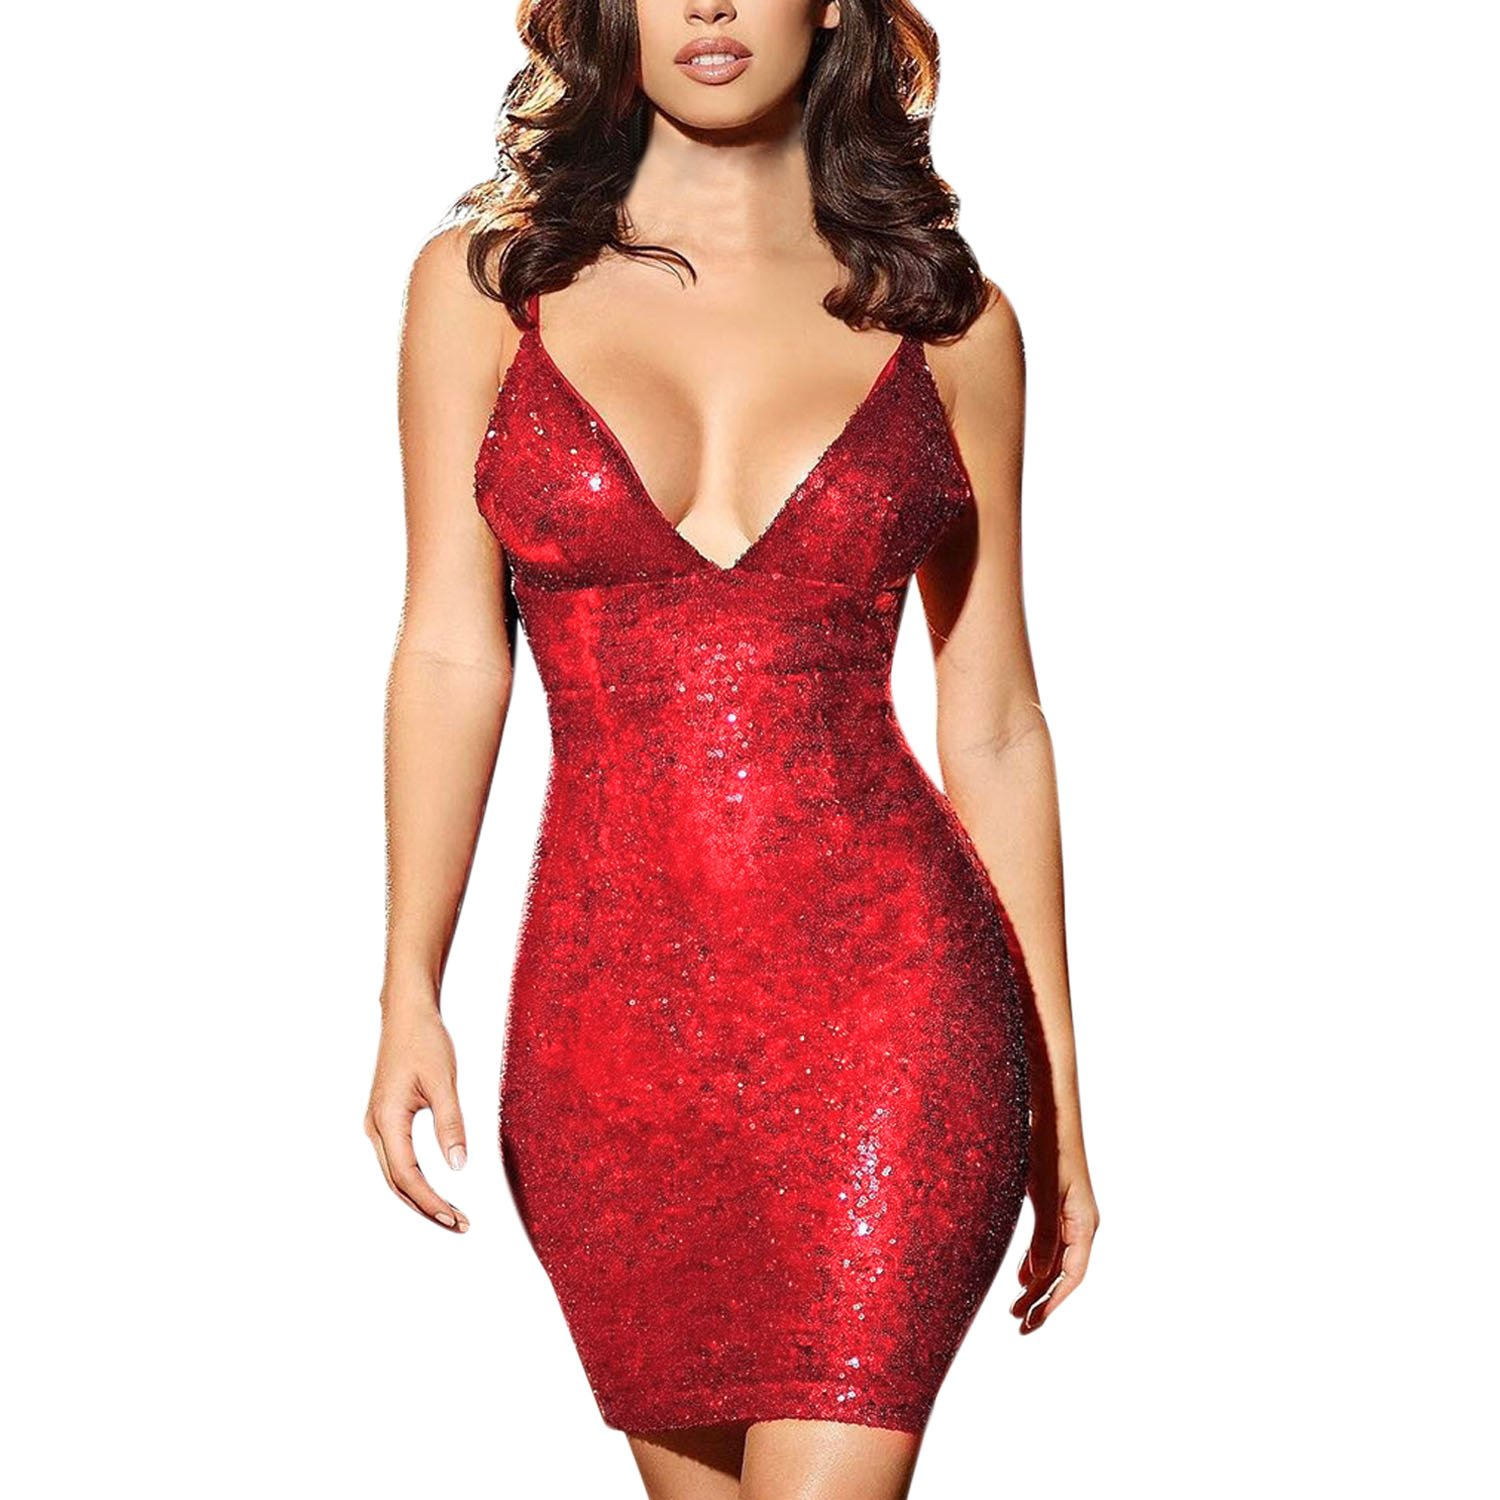 LAEMILIA Sexy Women Sequin Bodycon Mini Party Dress Shimmer Glam Sparkly Metallic Glitter Straps Sleeveless Stretchy Clubwear: Amazon.co.uk: Clothing